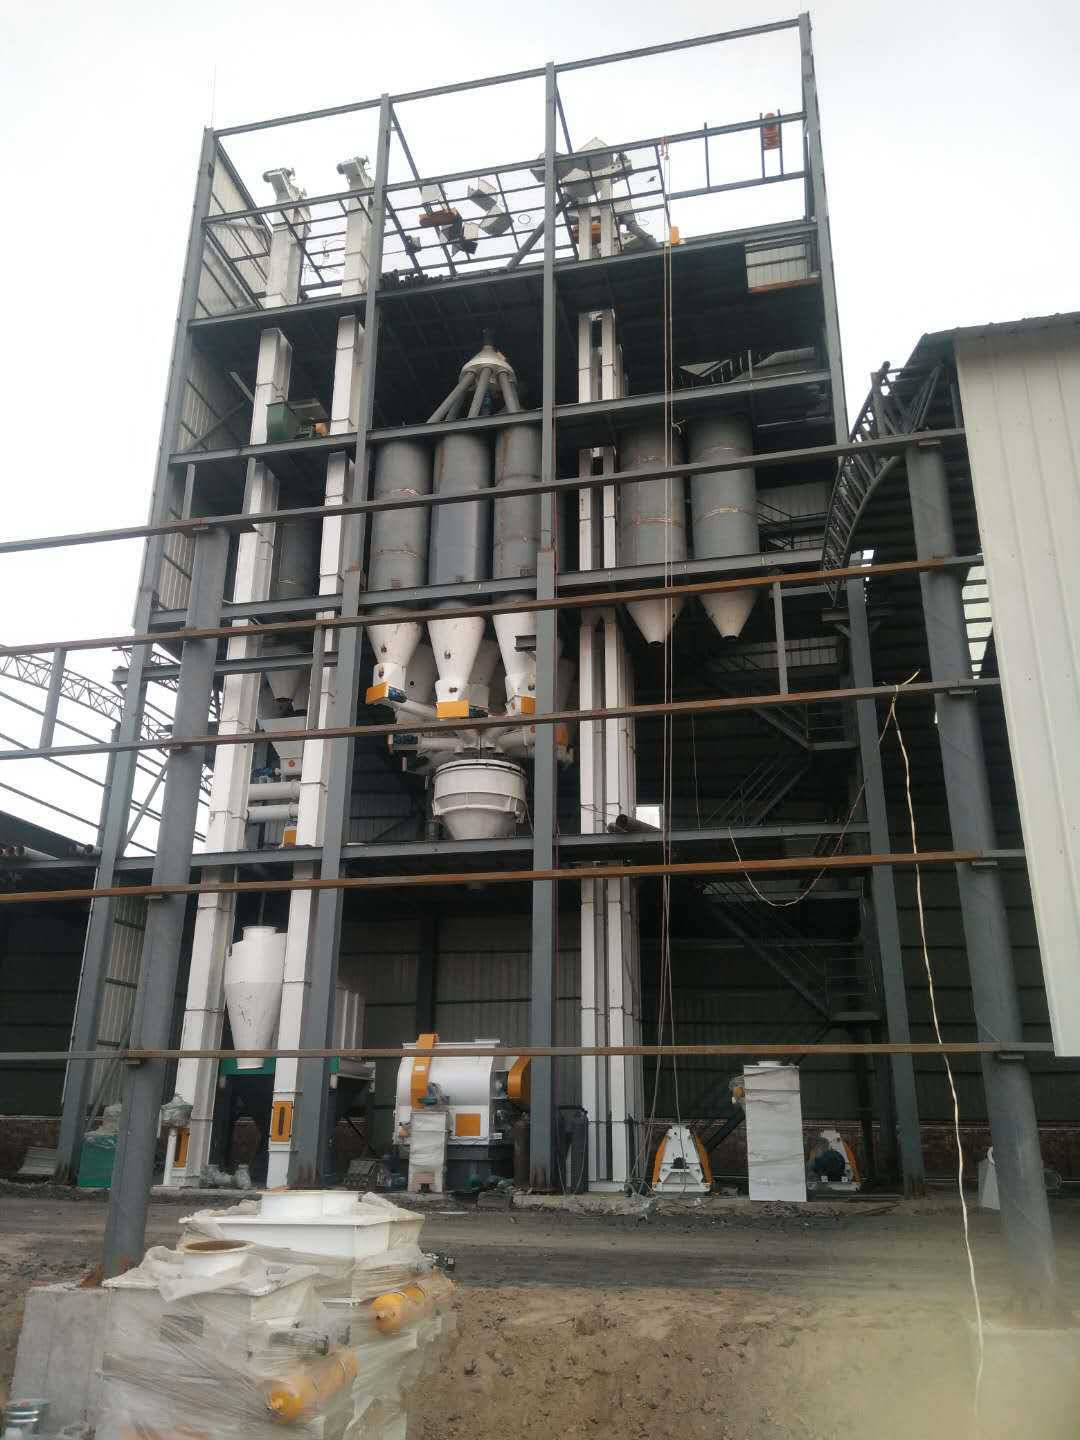 8-12 t/h feed production line installation site